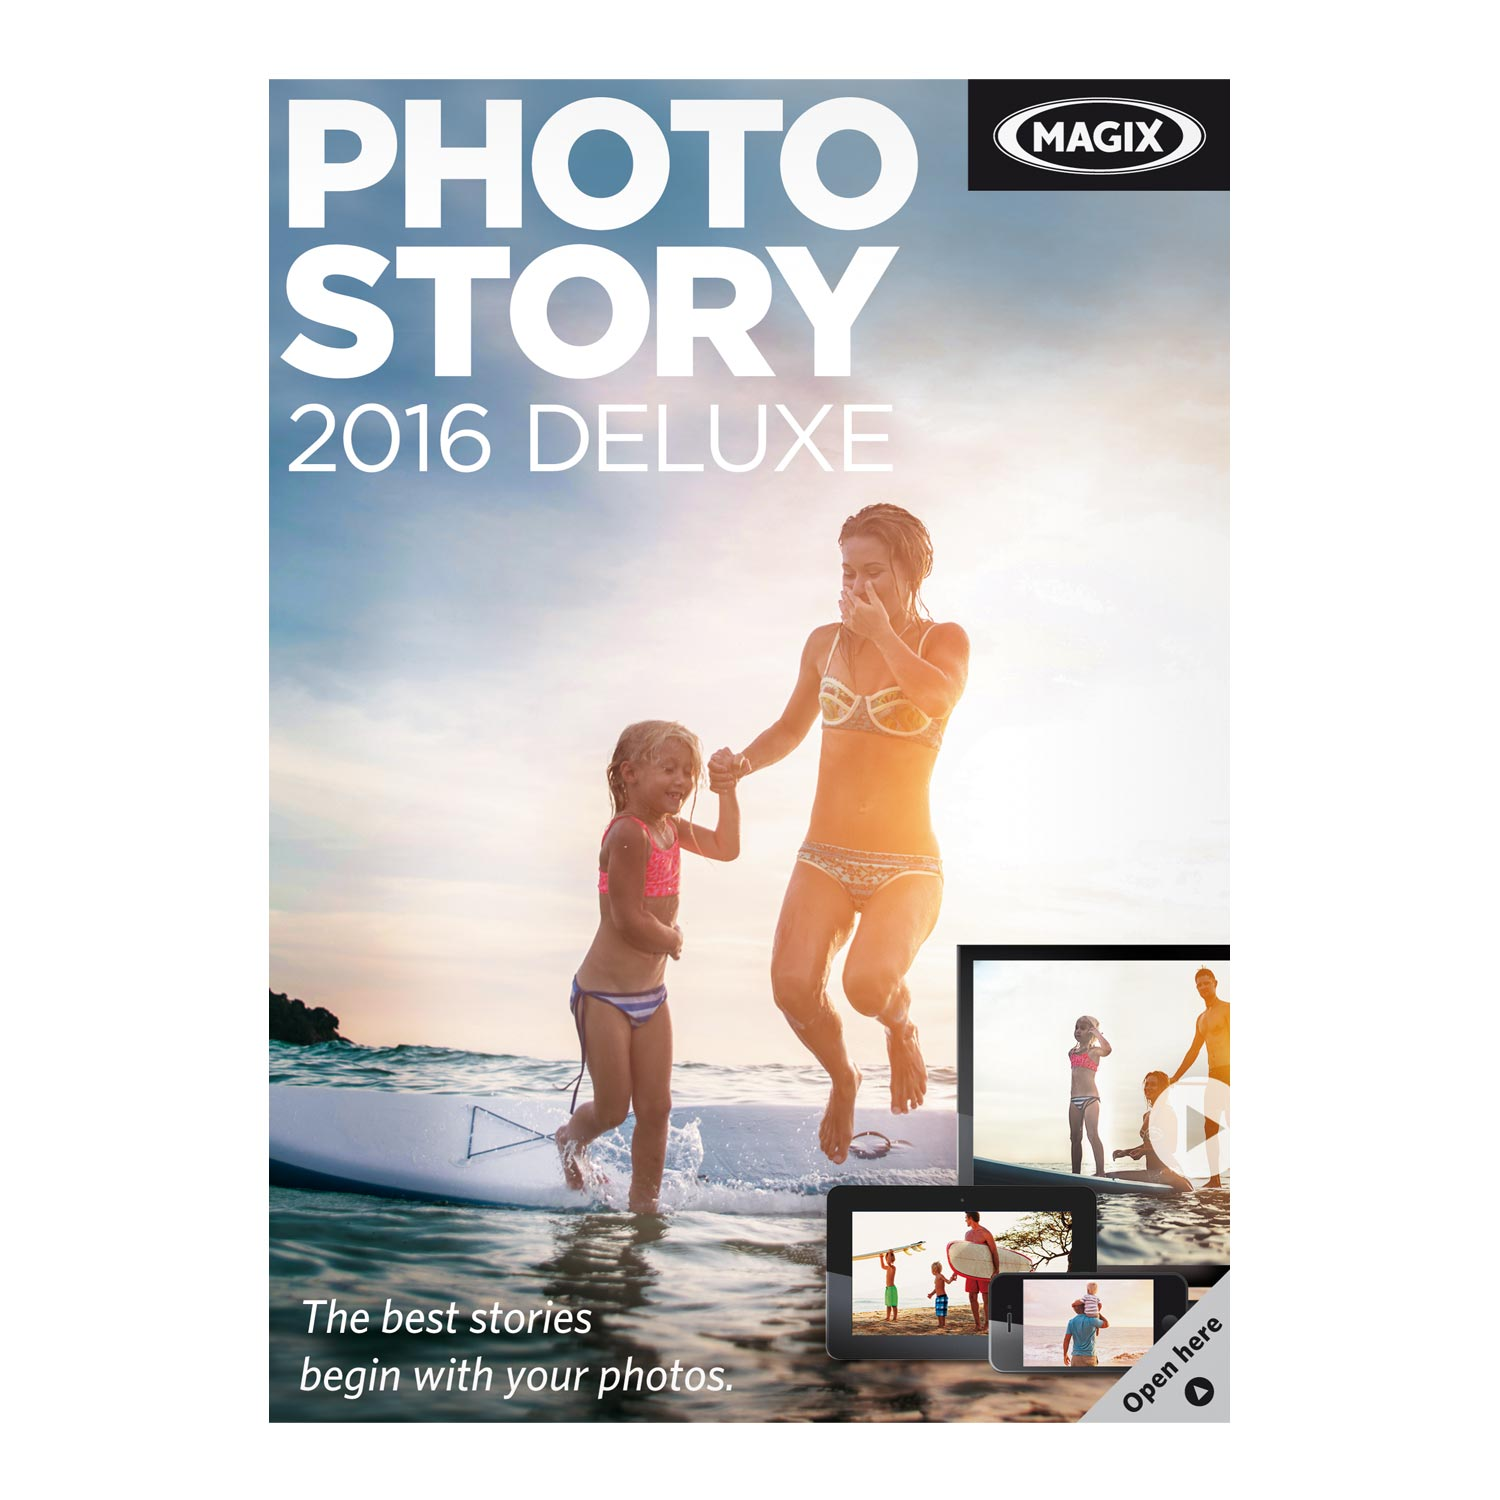 MAGIX Photostory 2016 Deluxe [Download] by MAGIX